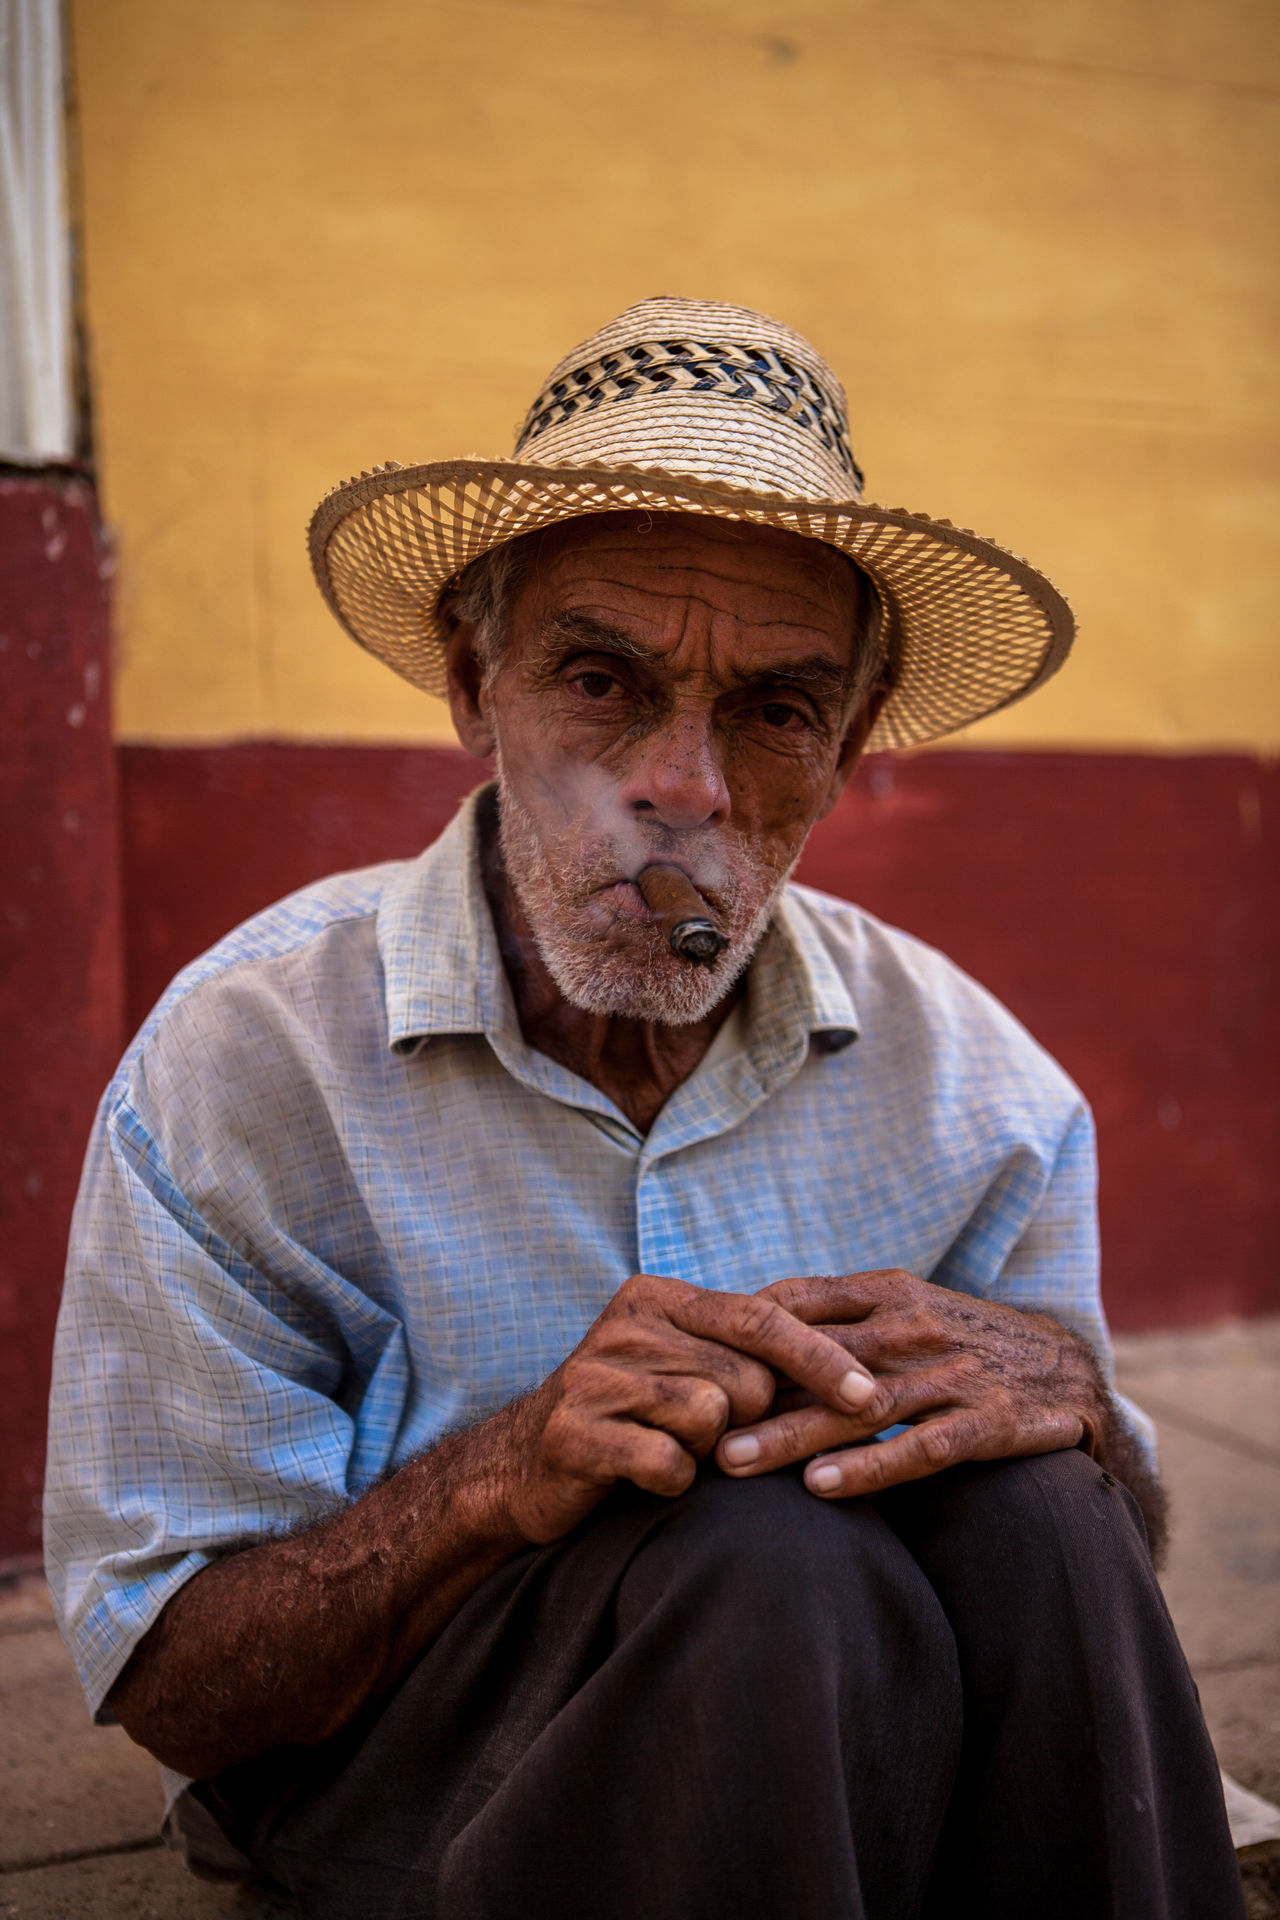 A cuban man poses for tourist' pictures. Casual Clothing Cuba Cuban Leisure Activity Lifestyles Man Mid Adult Men Old Man People Portrait Portrait Photography Sigar Smoke Strawhat Strawhatportraits Trinidad Trinidad, Cuba